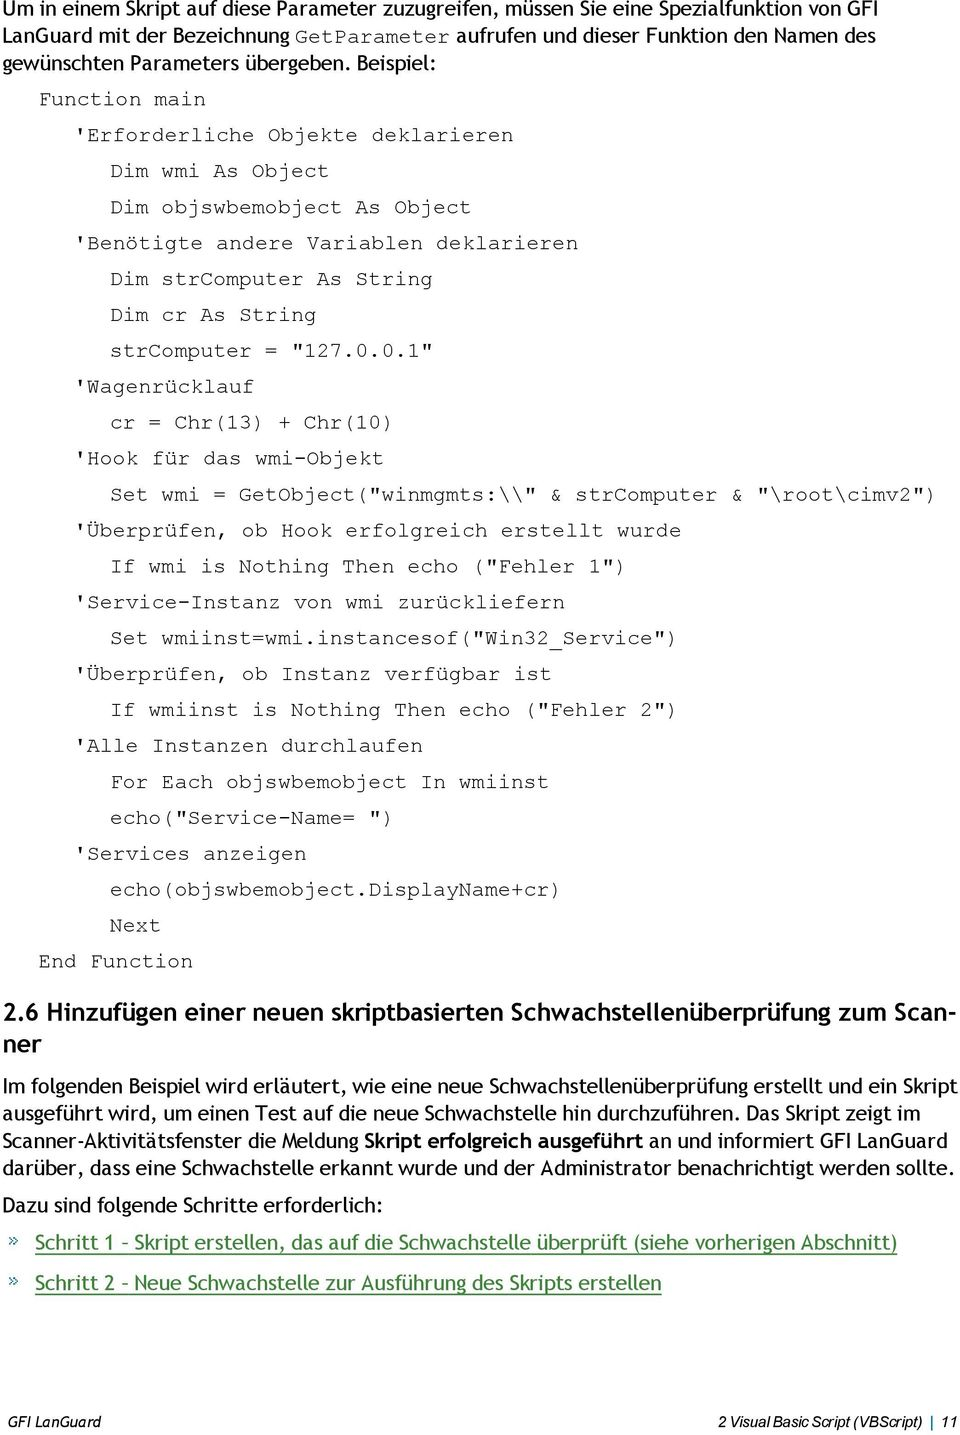 ": Function main 'Erforderliche Objekte deklarieren Dim wmi As Object Dim objswbemobject As Object 'Benötigte andere Variablen deklarieren Dim strcomputer As String Dim cr As String strcomputer = ""127."